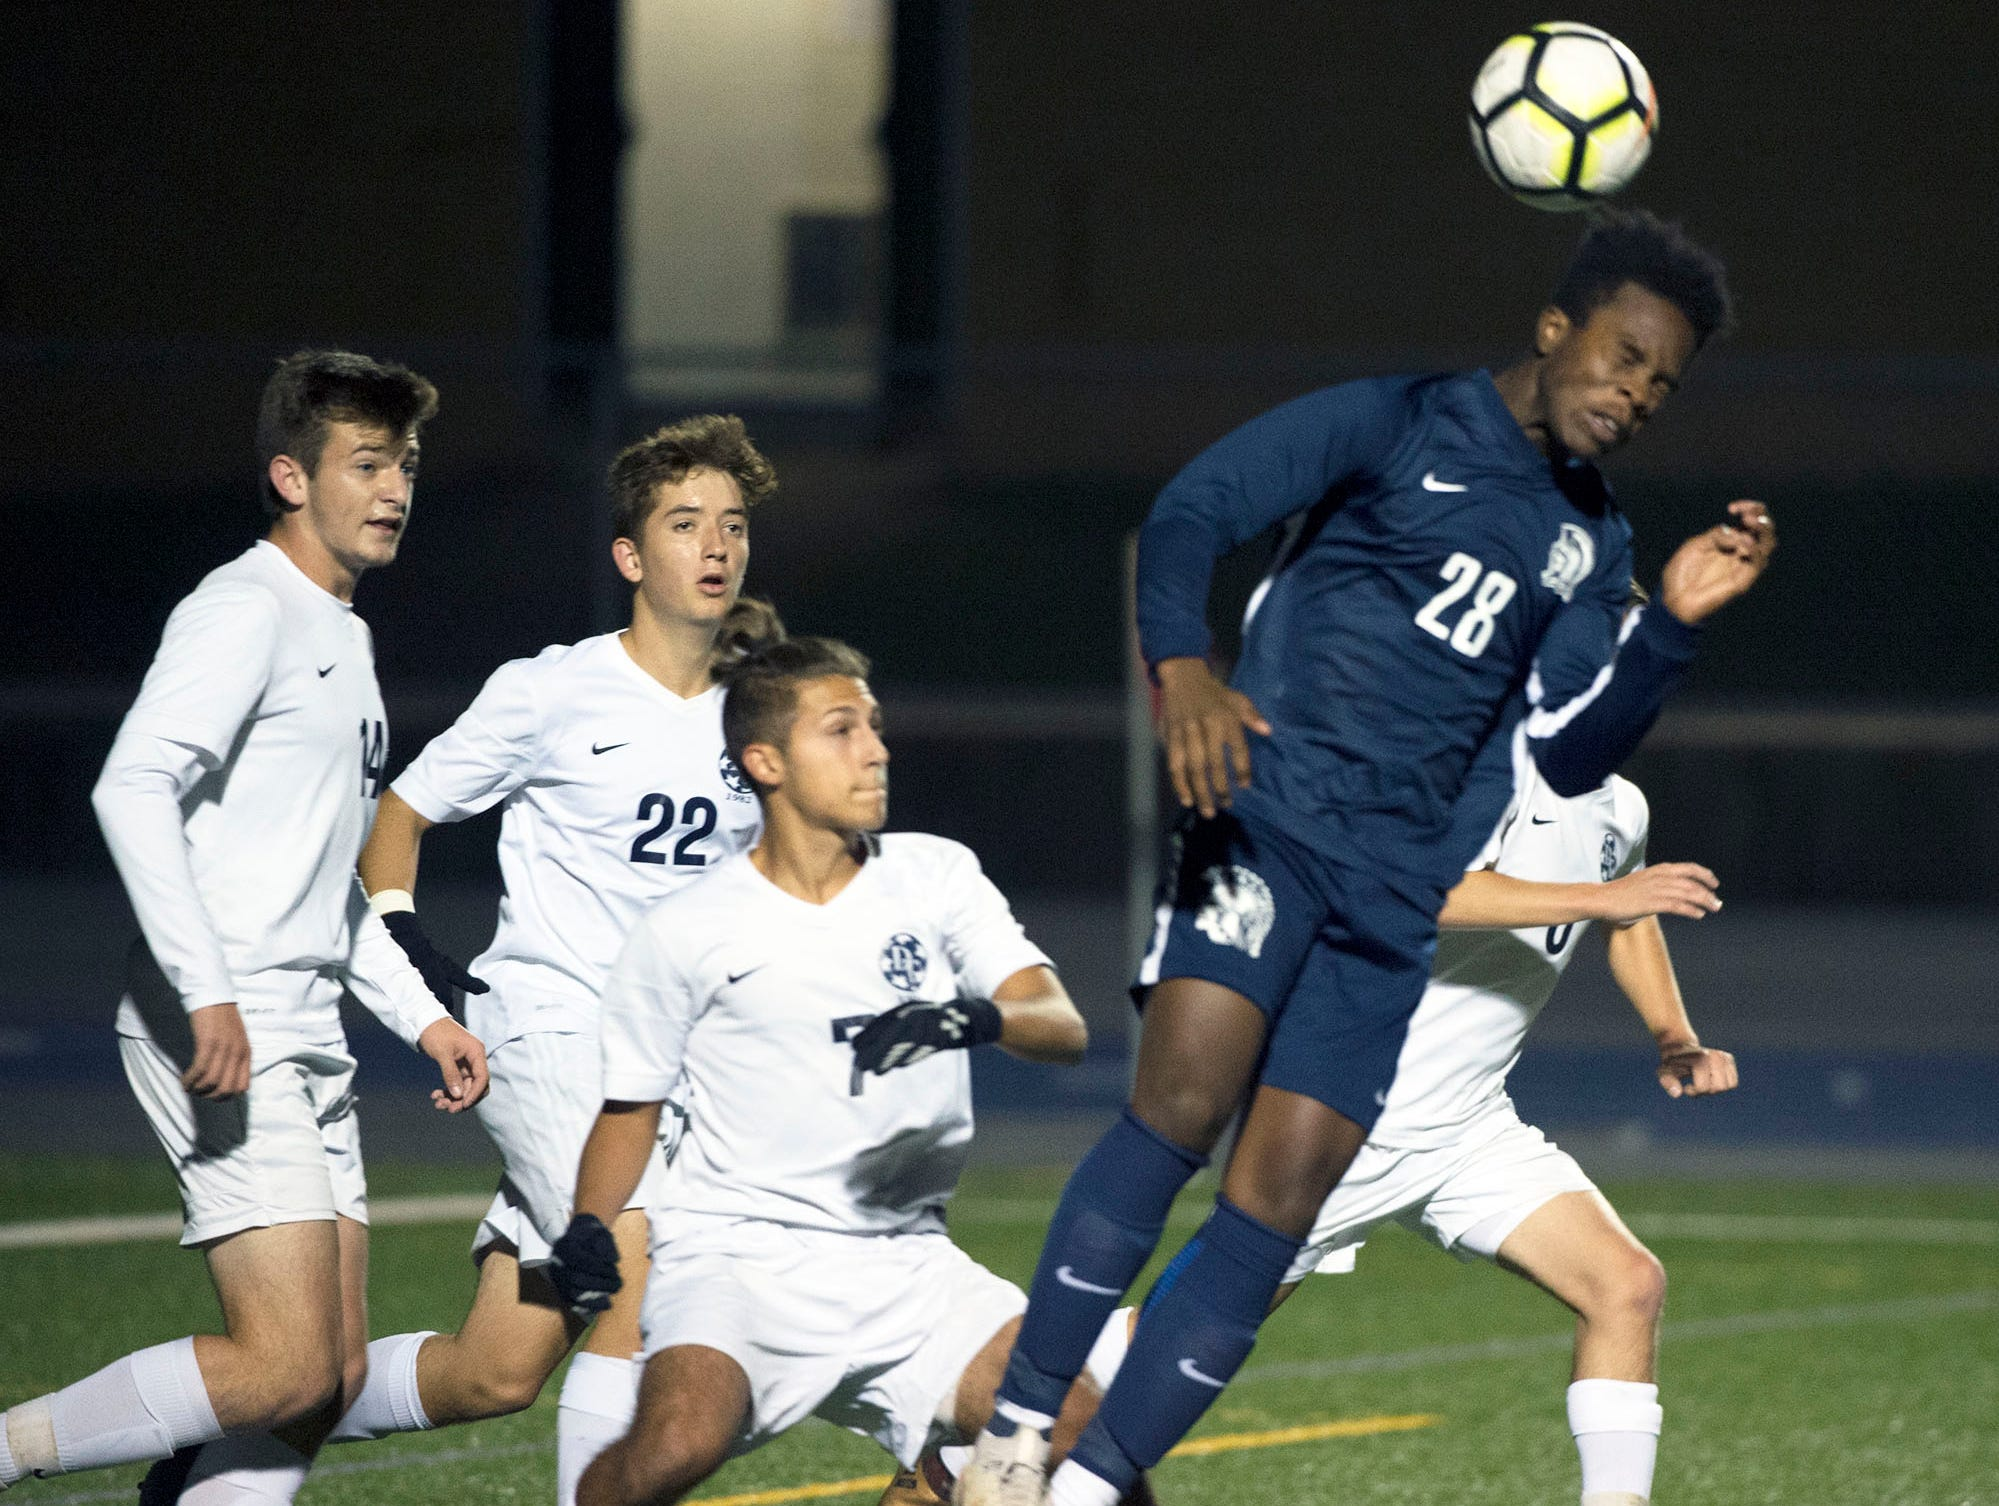 Terrell Samuels (28) heads the ball for Chambersburg. Chambersburg lost a first round D3 soccer match to Dallastown 2-1 on Tuesday, Oct. 23, 2018.